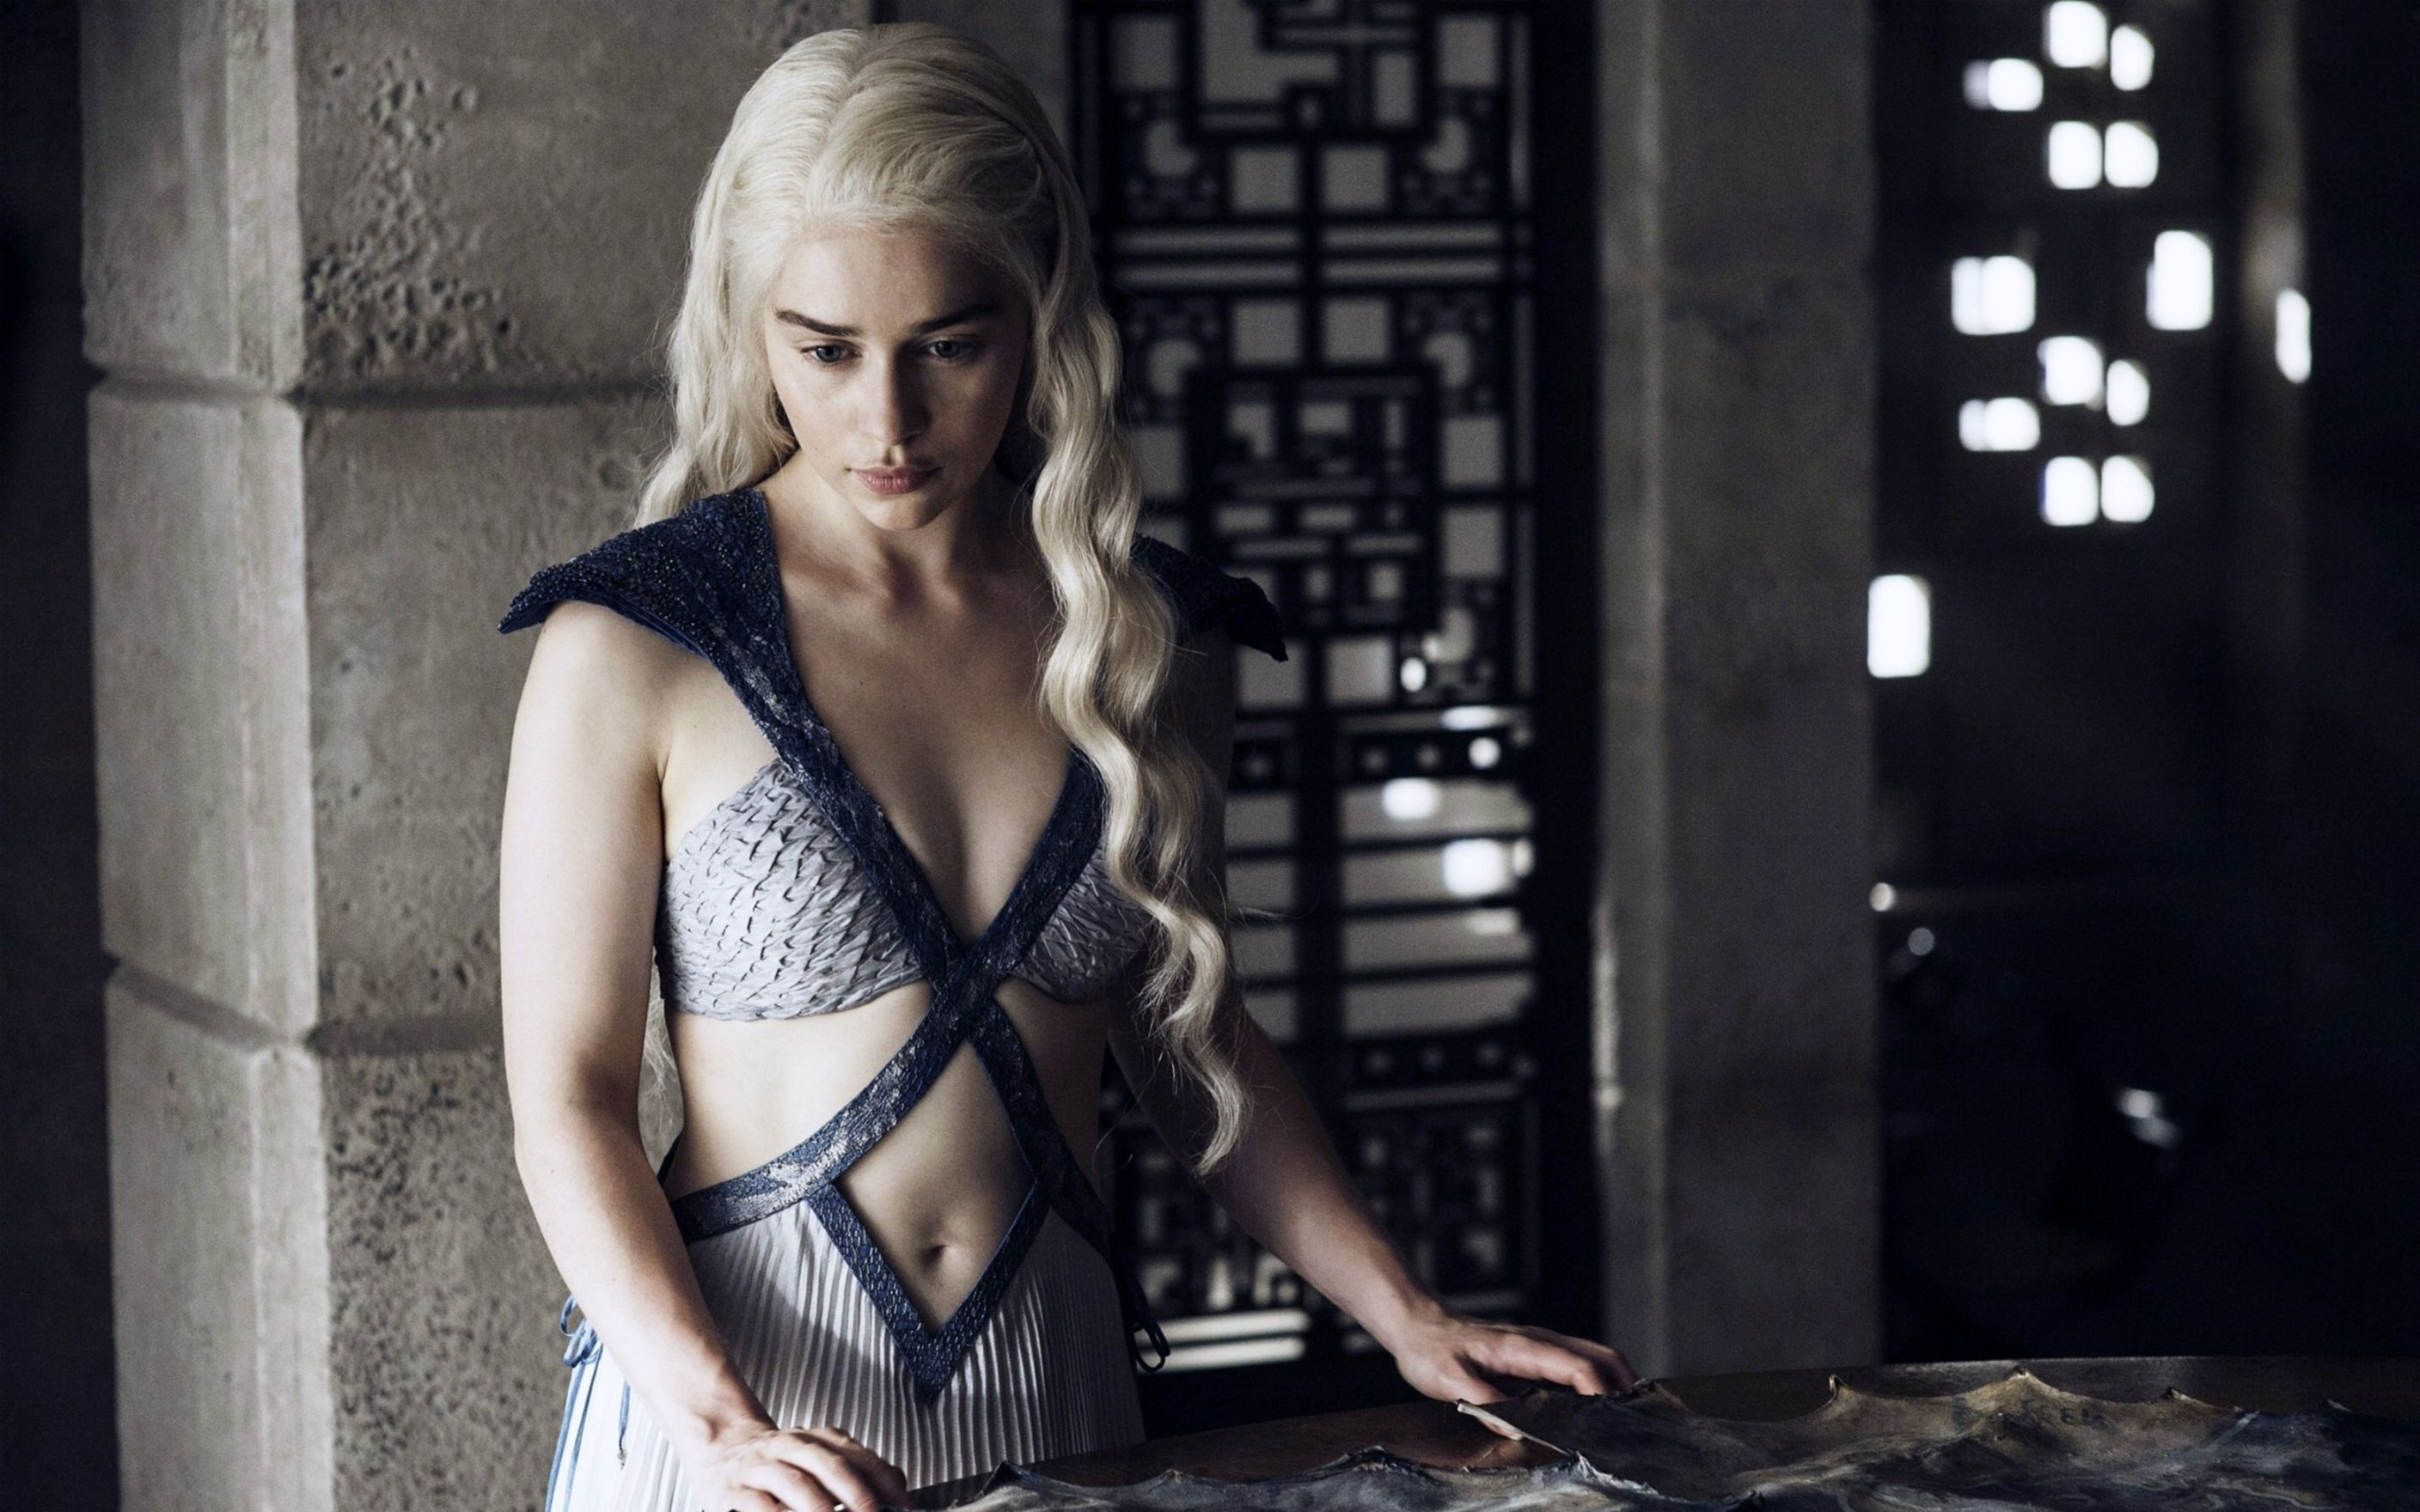 Download free HD Daenerys Targaryen Game Of Thrones Wallpaper, image